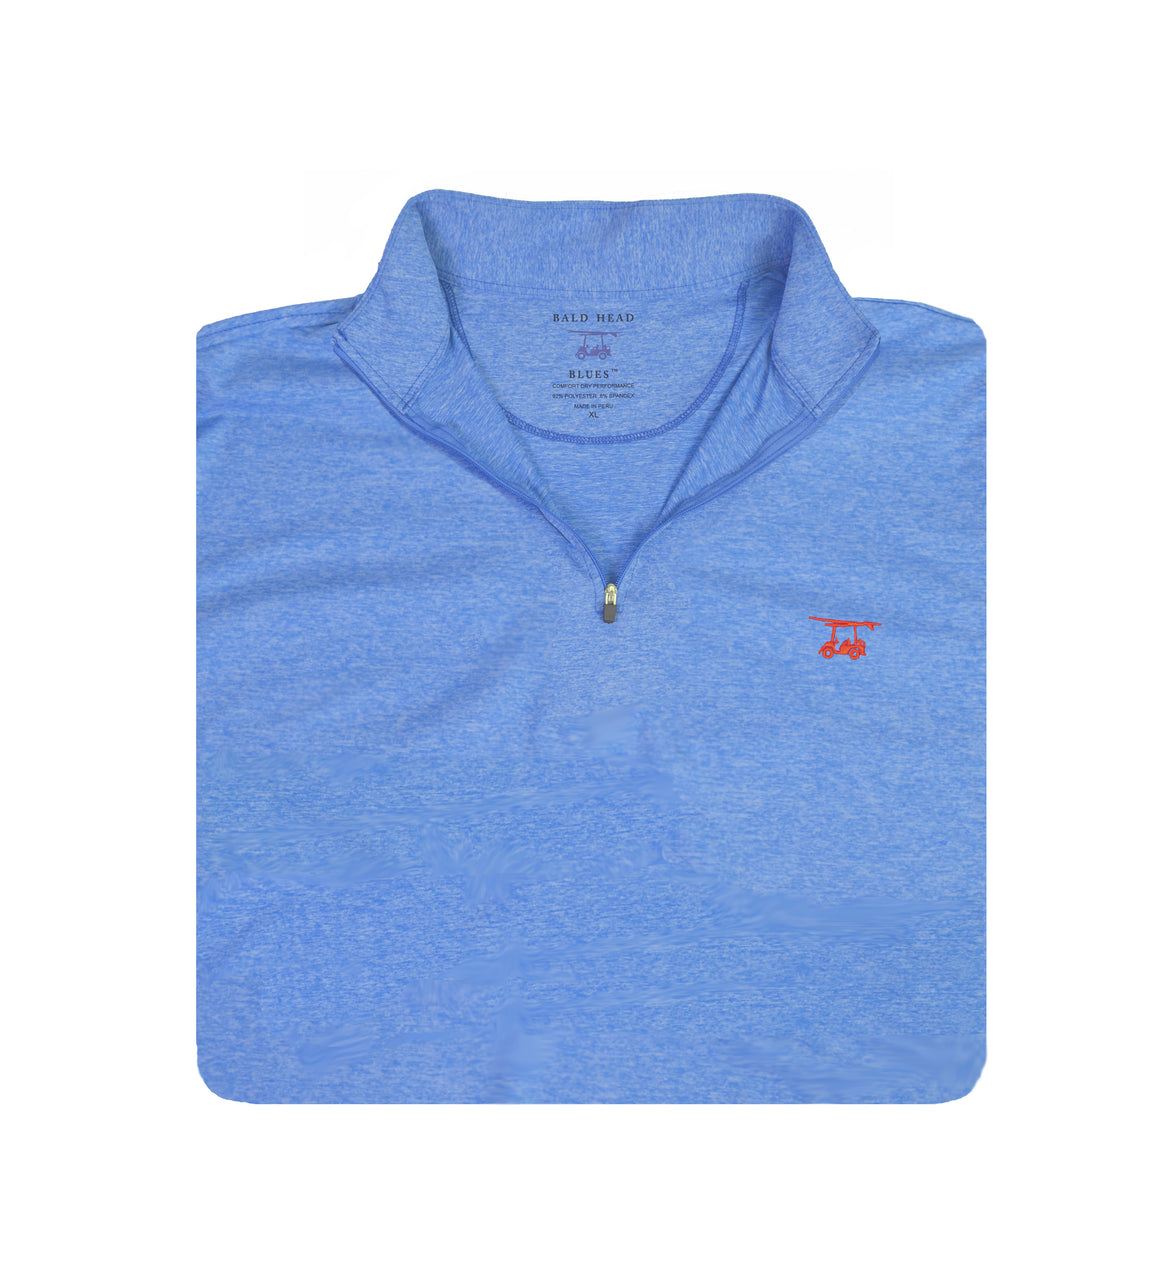 *NEW* Youth Ocean View Quarter Zip - Heather Regatta